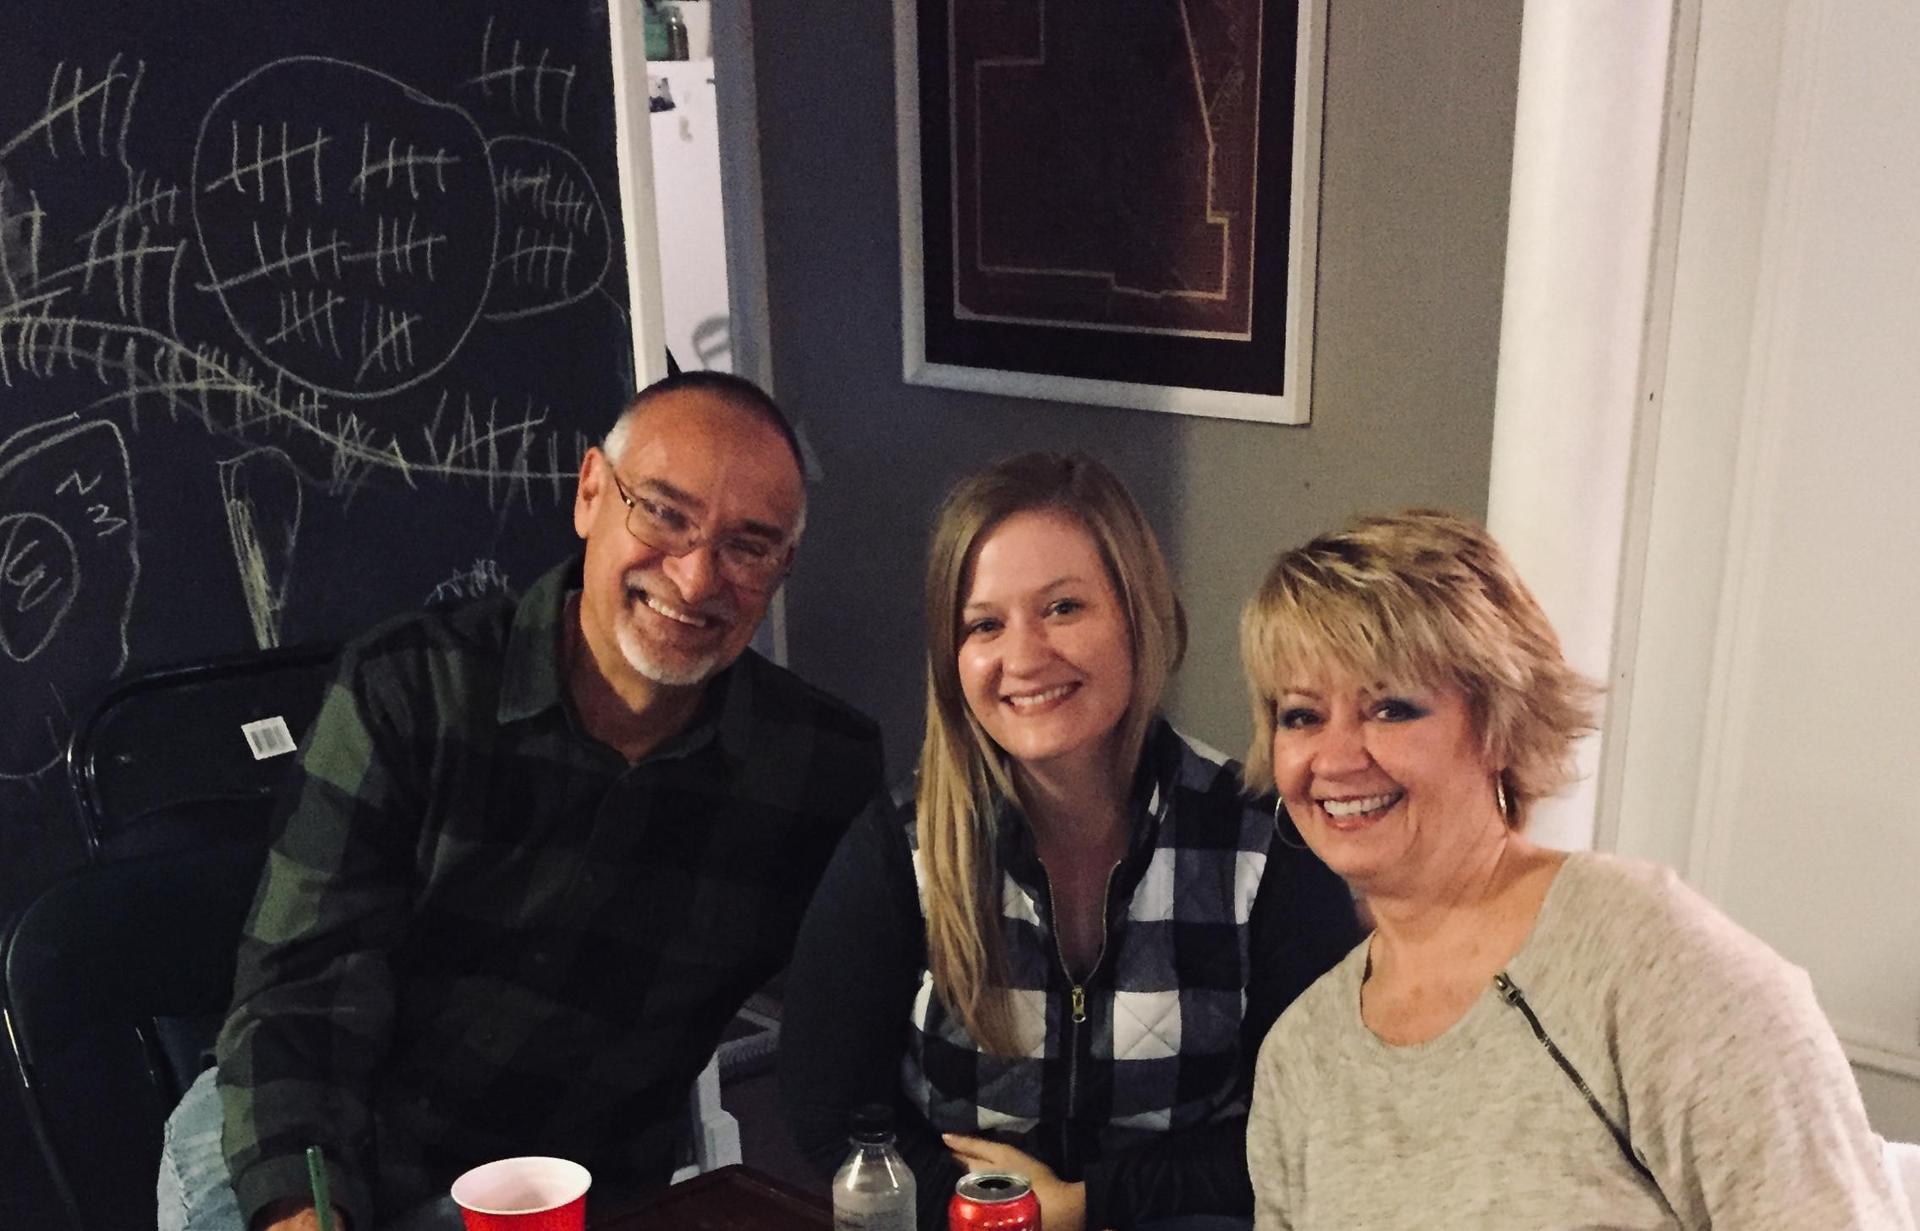 My parents and I